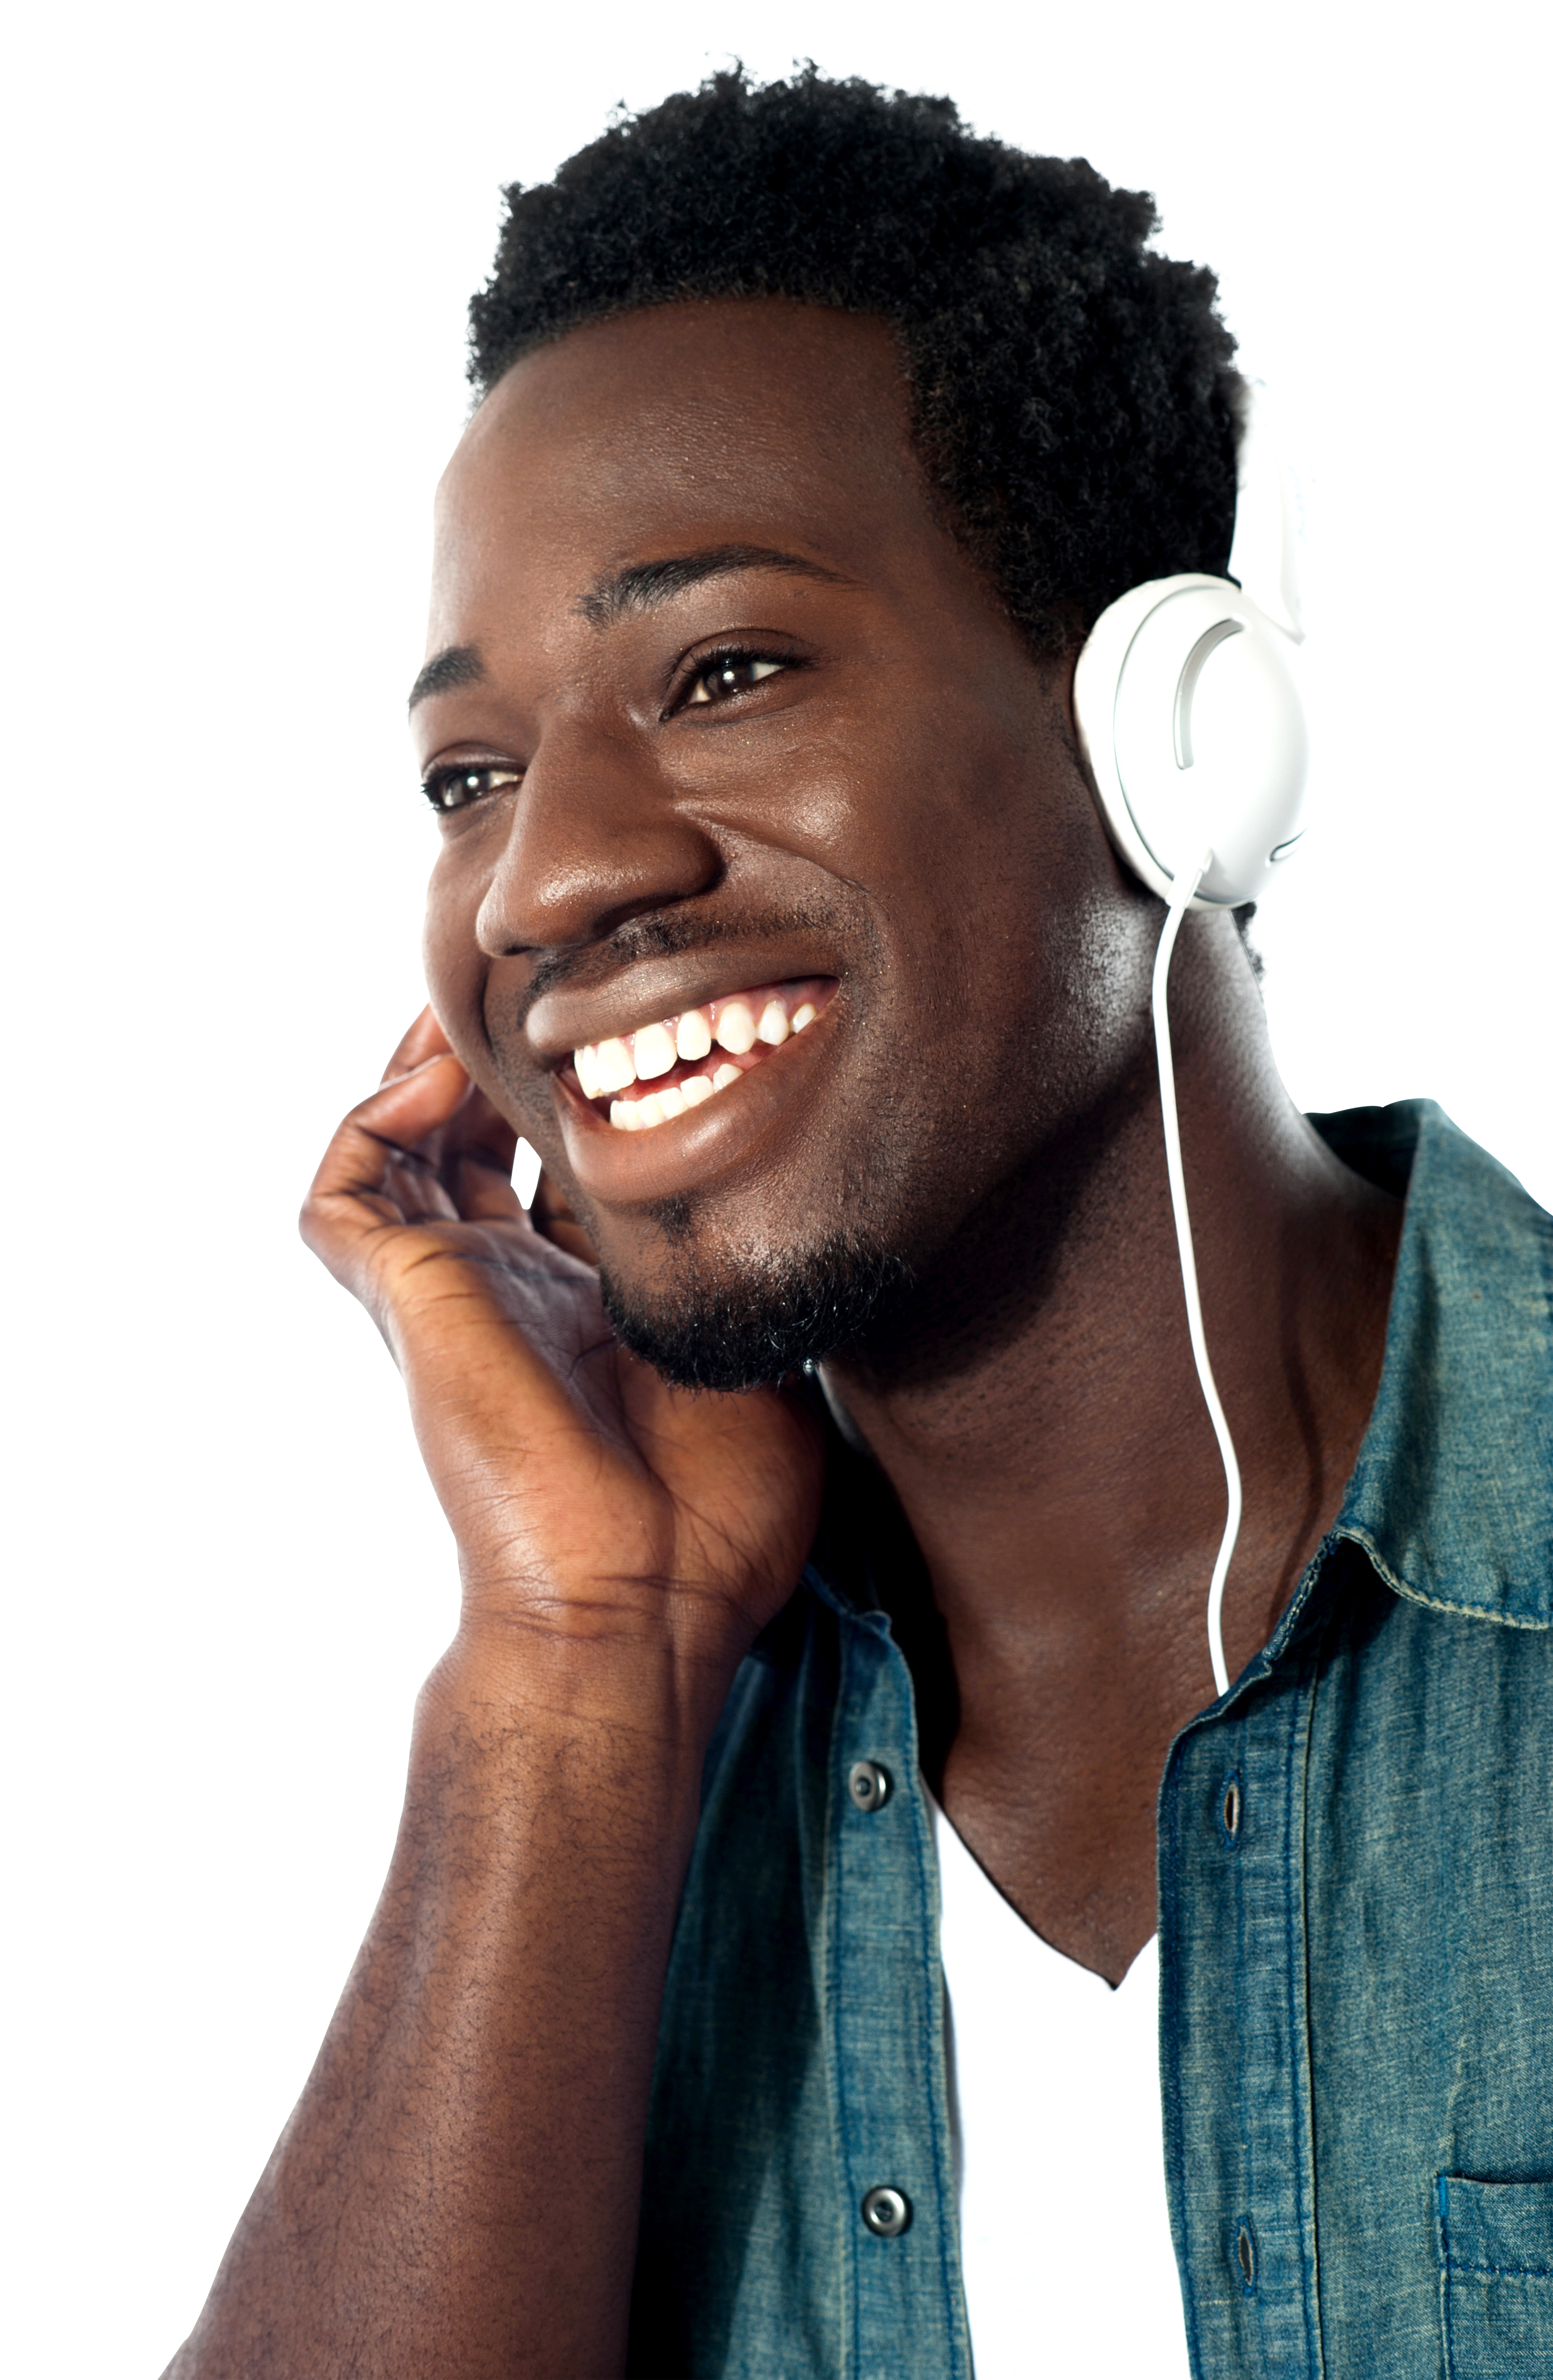 Listening Music Png Image Music People Listening